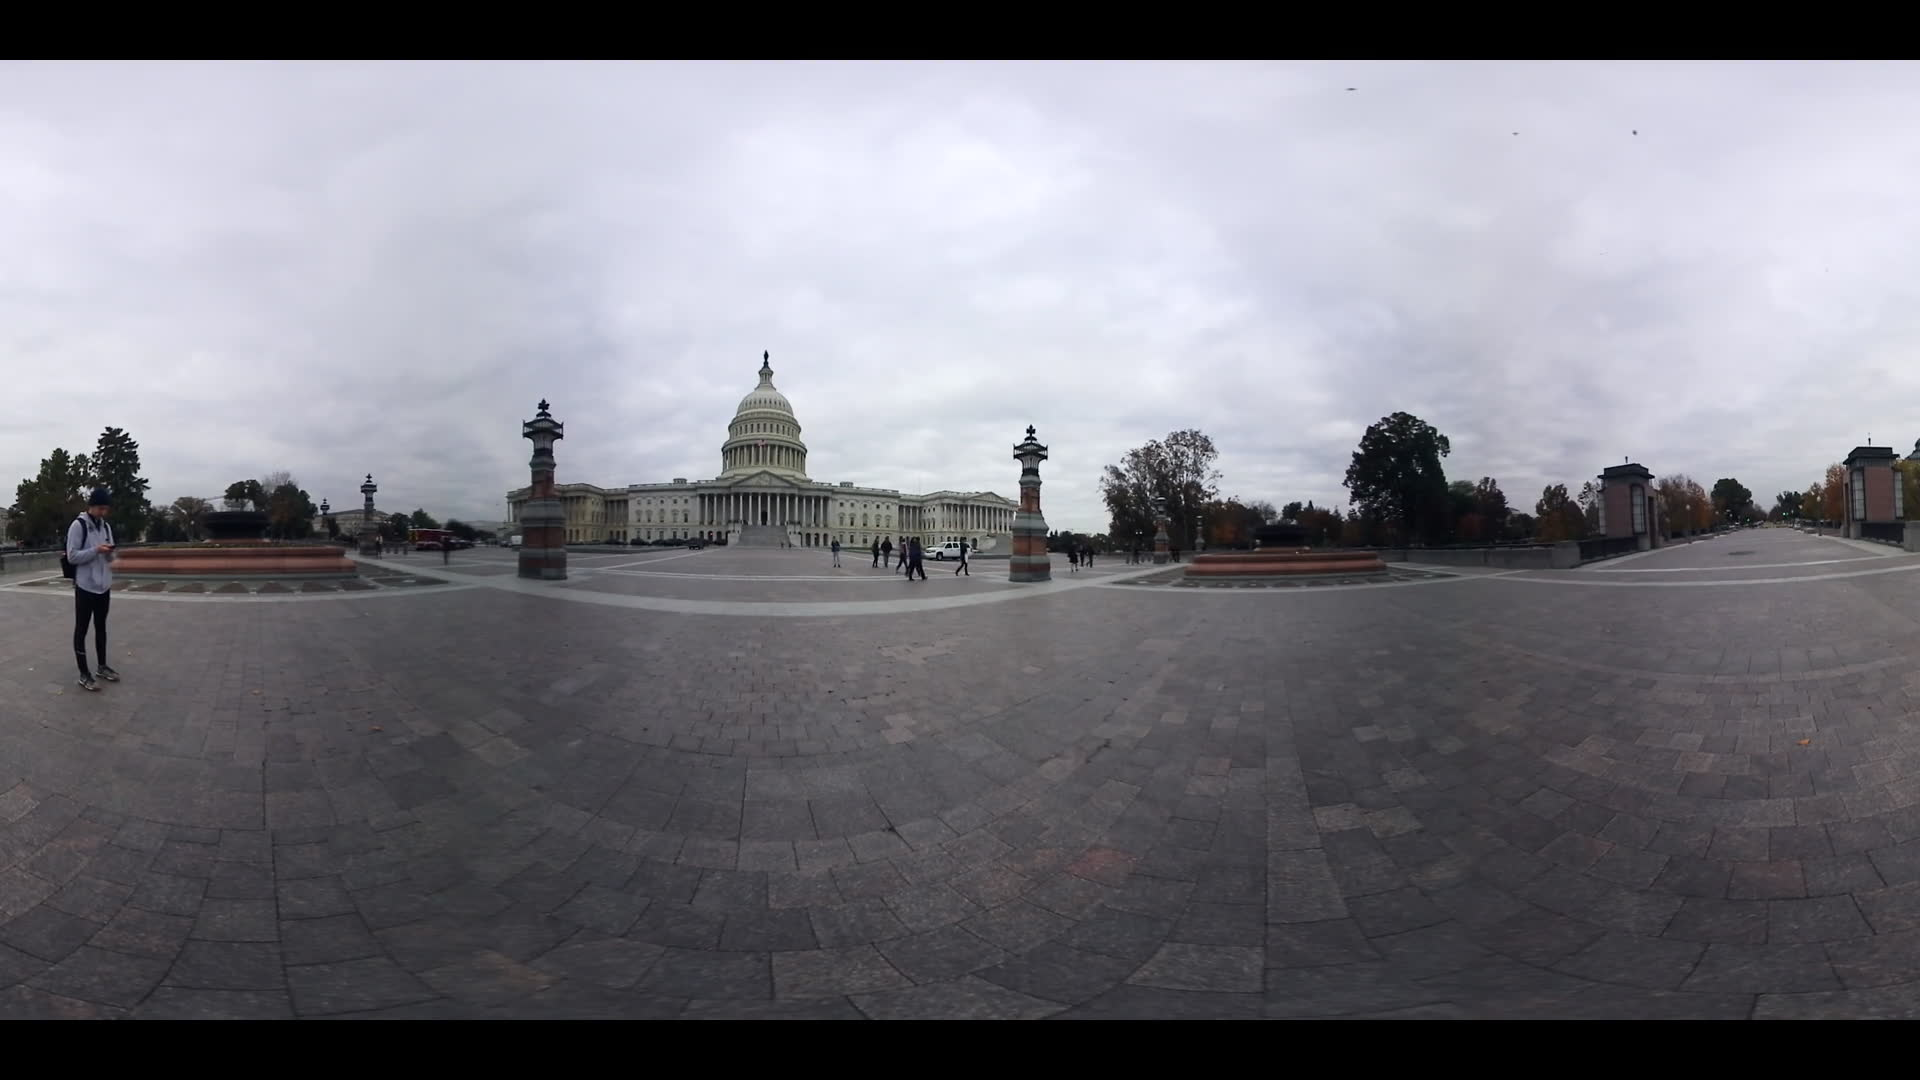 360 VR Us Congress Capitol Building and Gardens